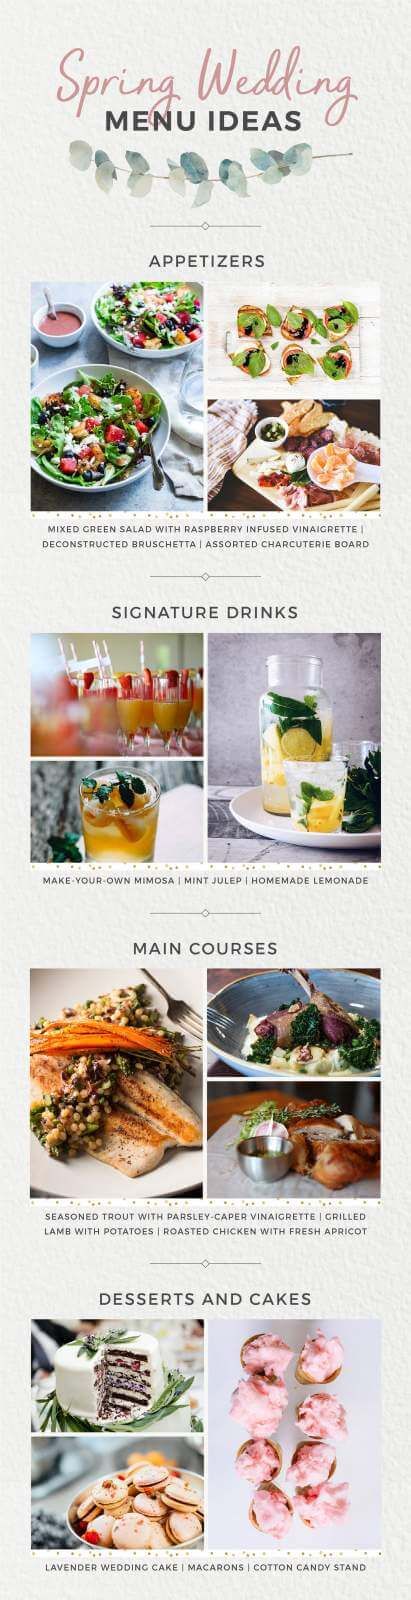 Spring Wedding Menu Ideas